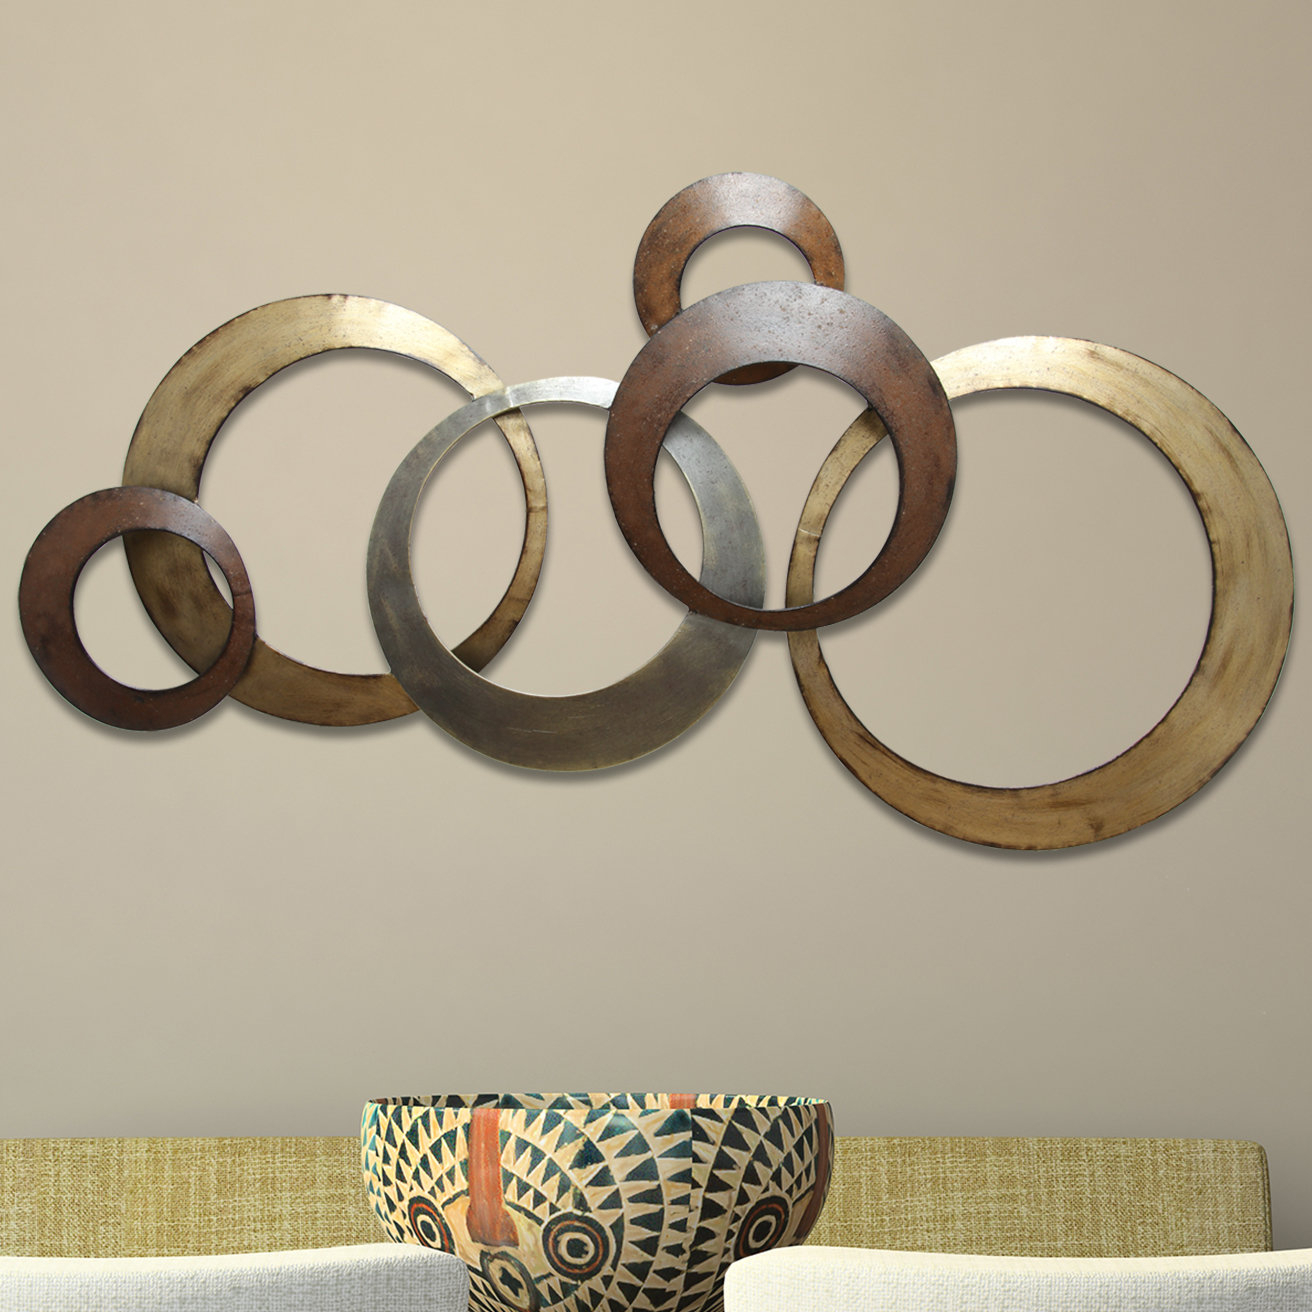 Wayfair With Rings Wall Decor (View 17 of 20)